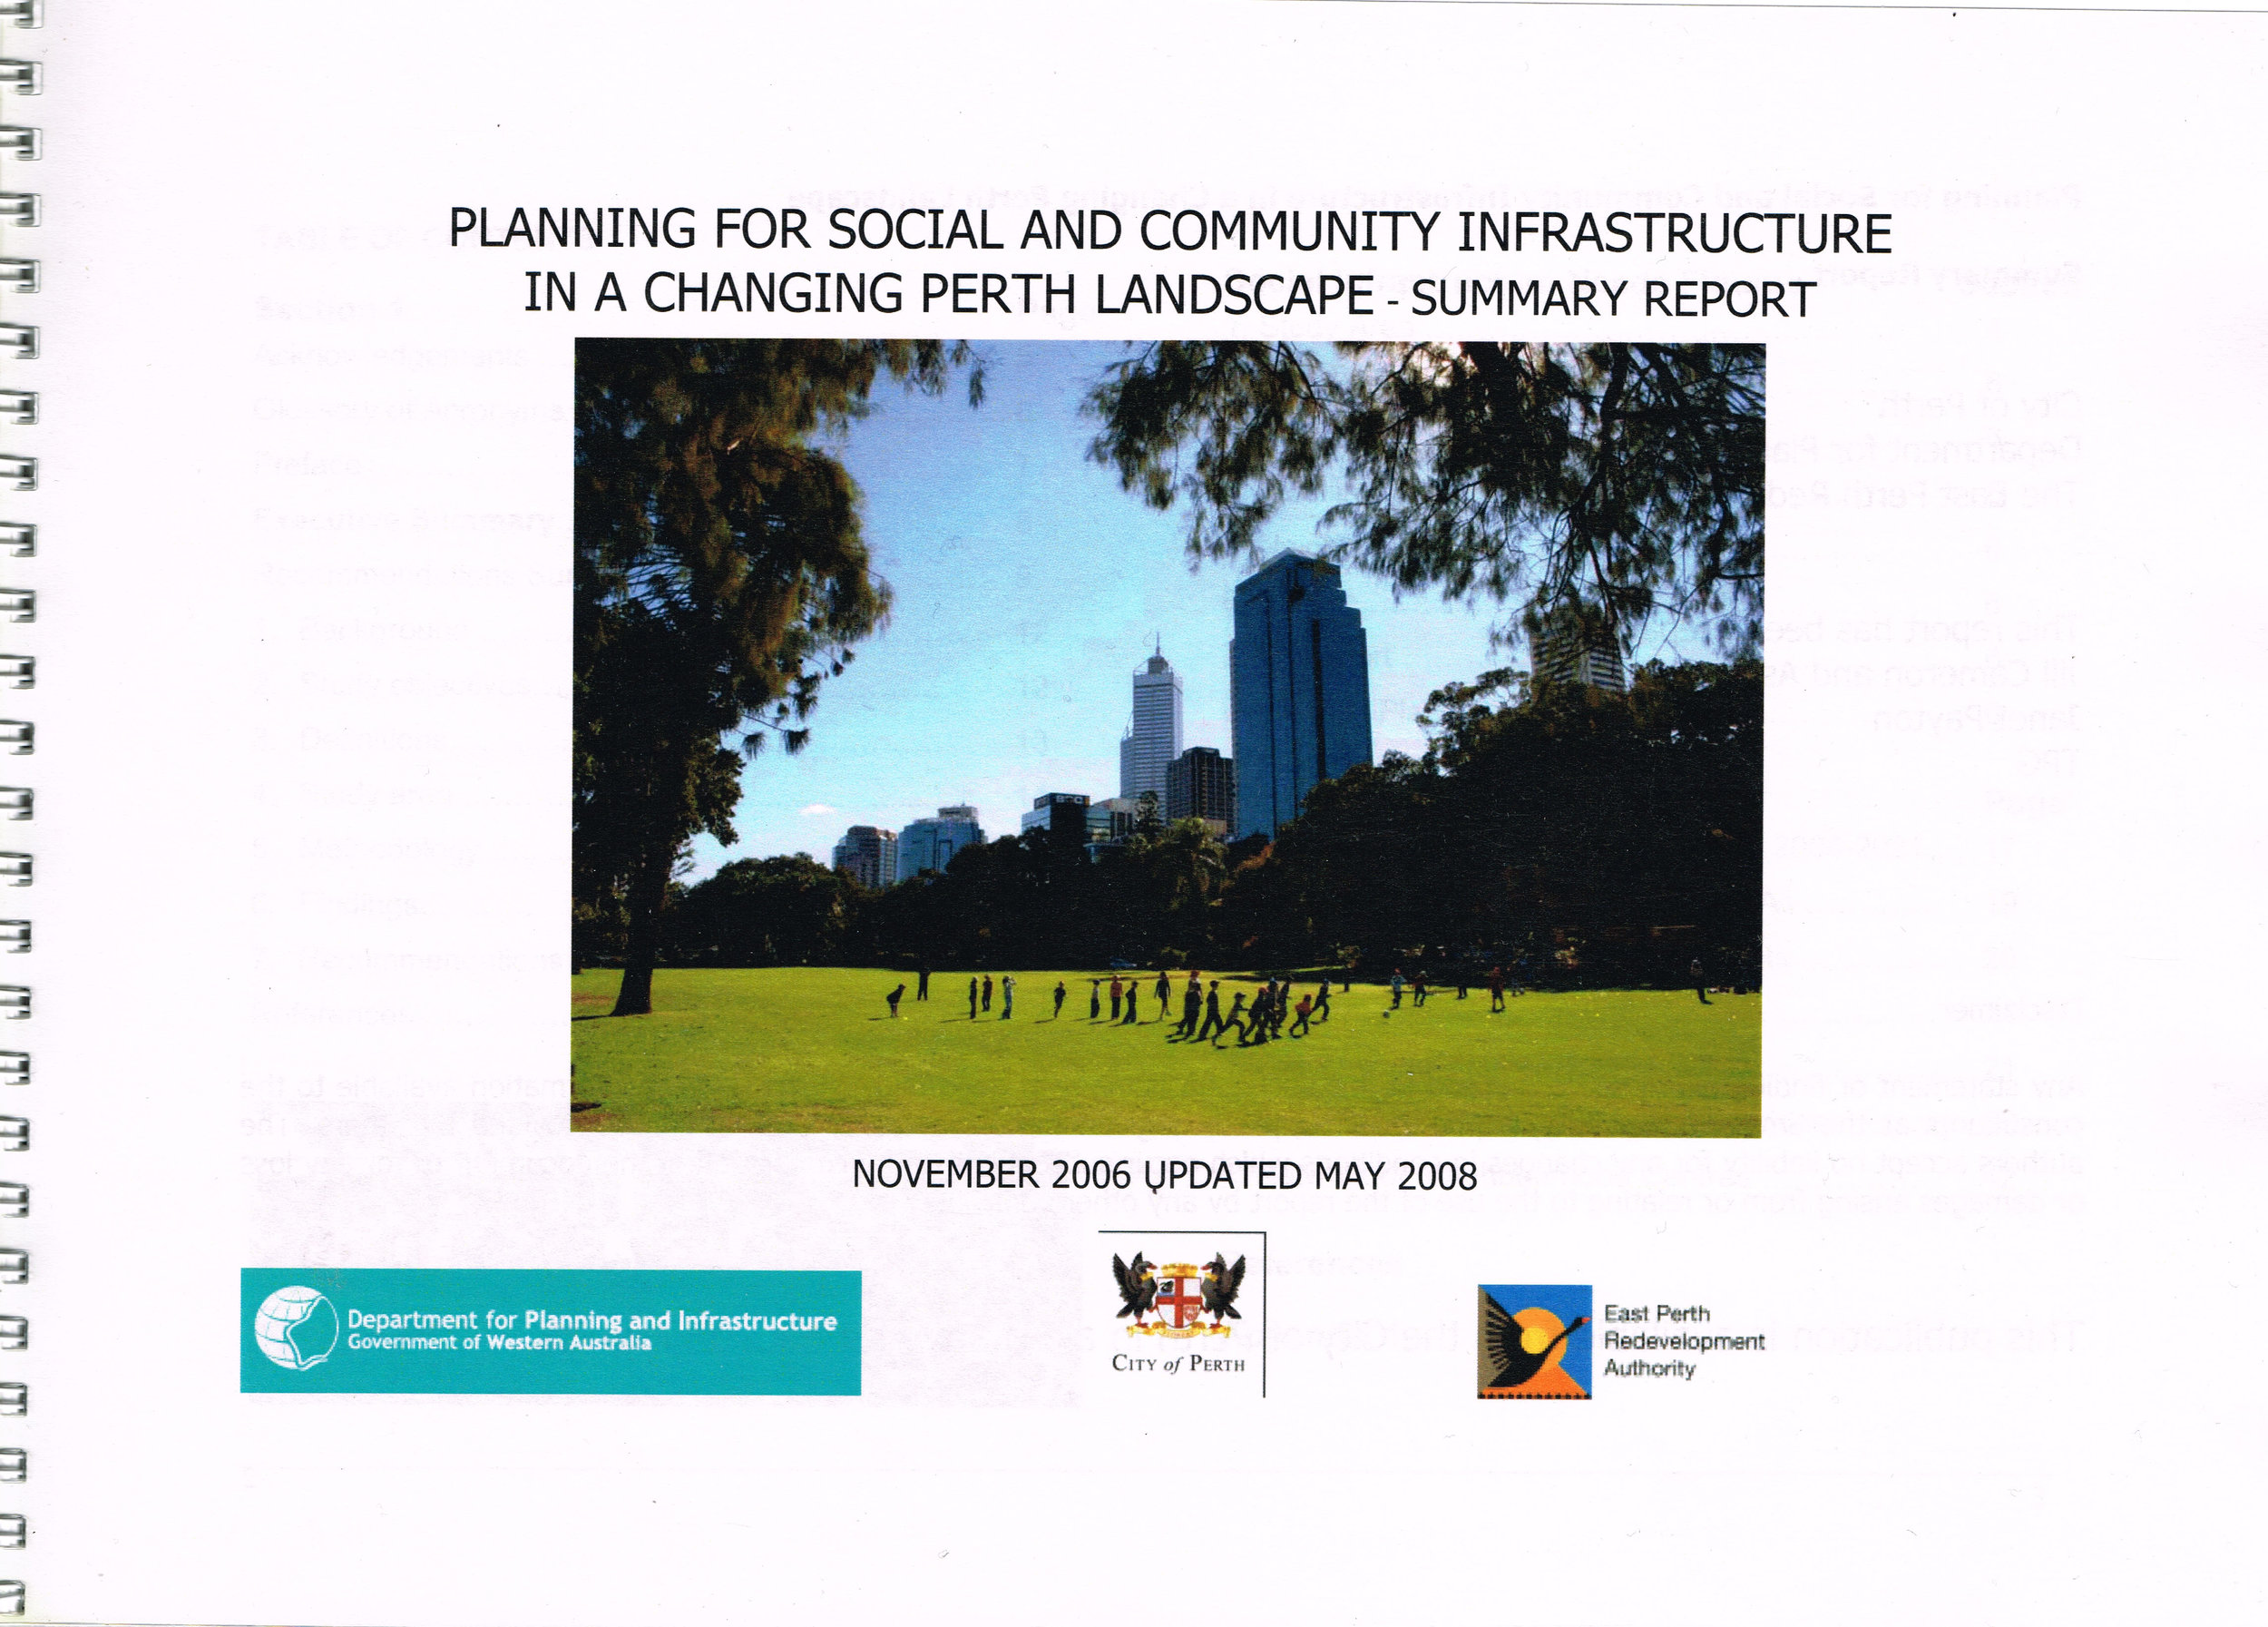 Planning for Social and Community Infrastructure in a Changing Perth Landscape : Summary Report, November 2006 Updated May 2008  Prepared by Jill Cameron and Associates, Janet Payton, TPG for the City of Perth, Department for Planning and Infrastructure and The East Perth Redevelopment Authority